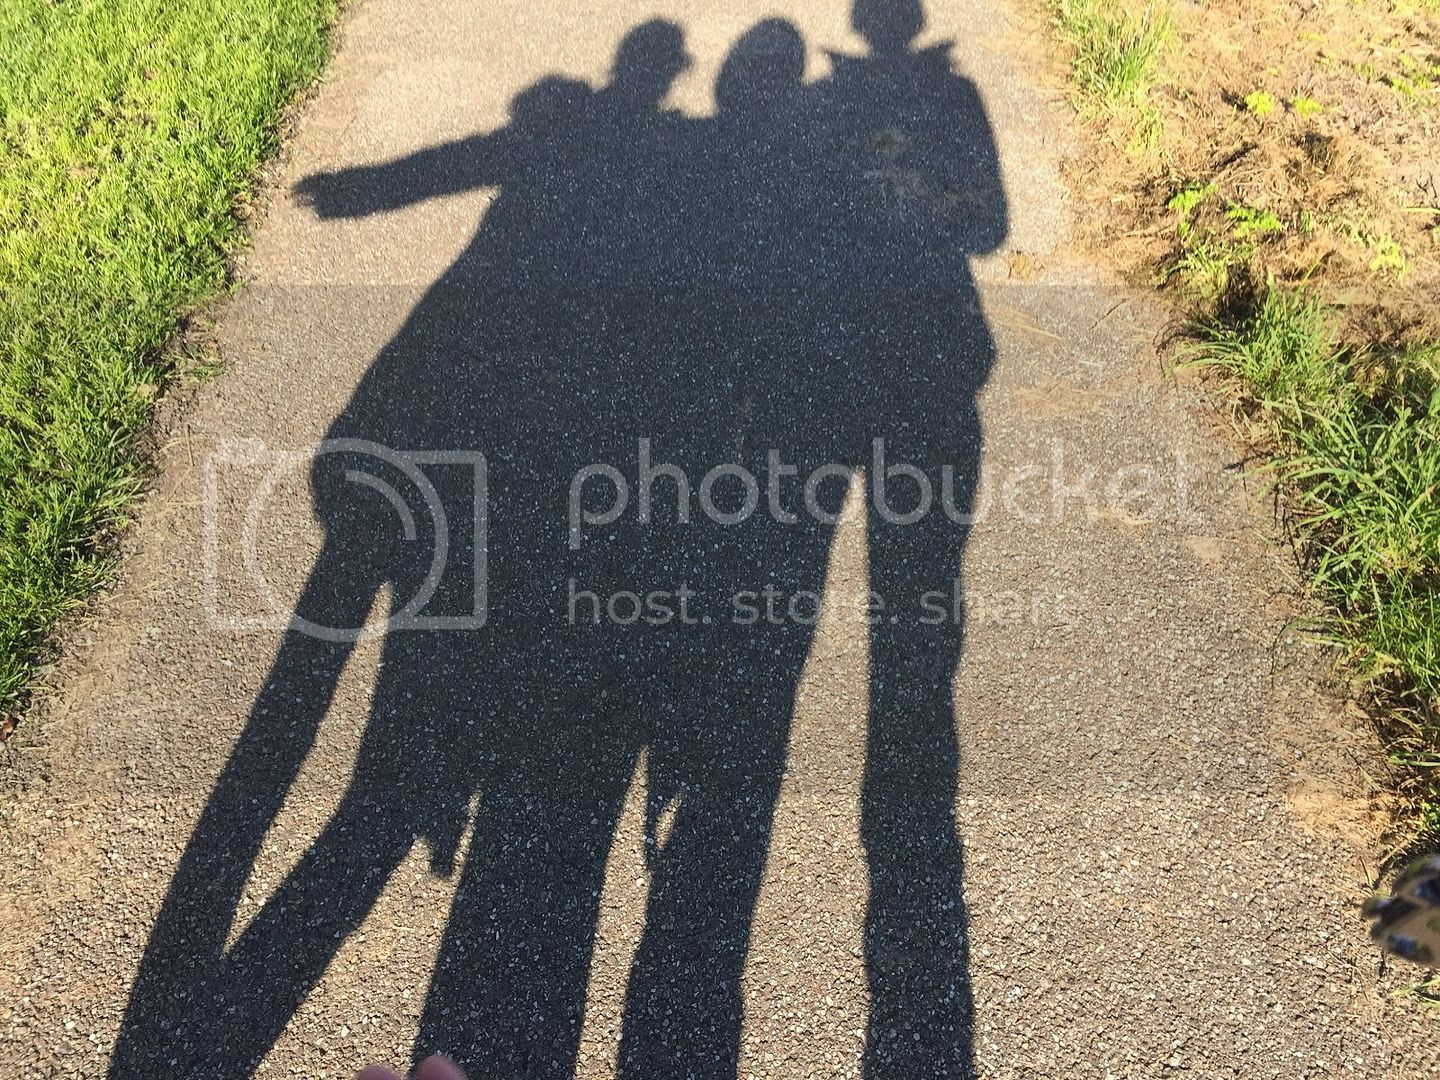 10/20/16 Sweet and playful photo Look how long our shadows are.jpg